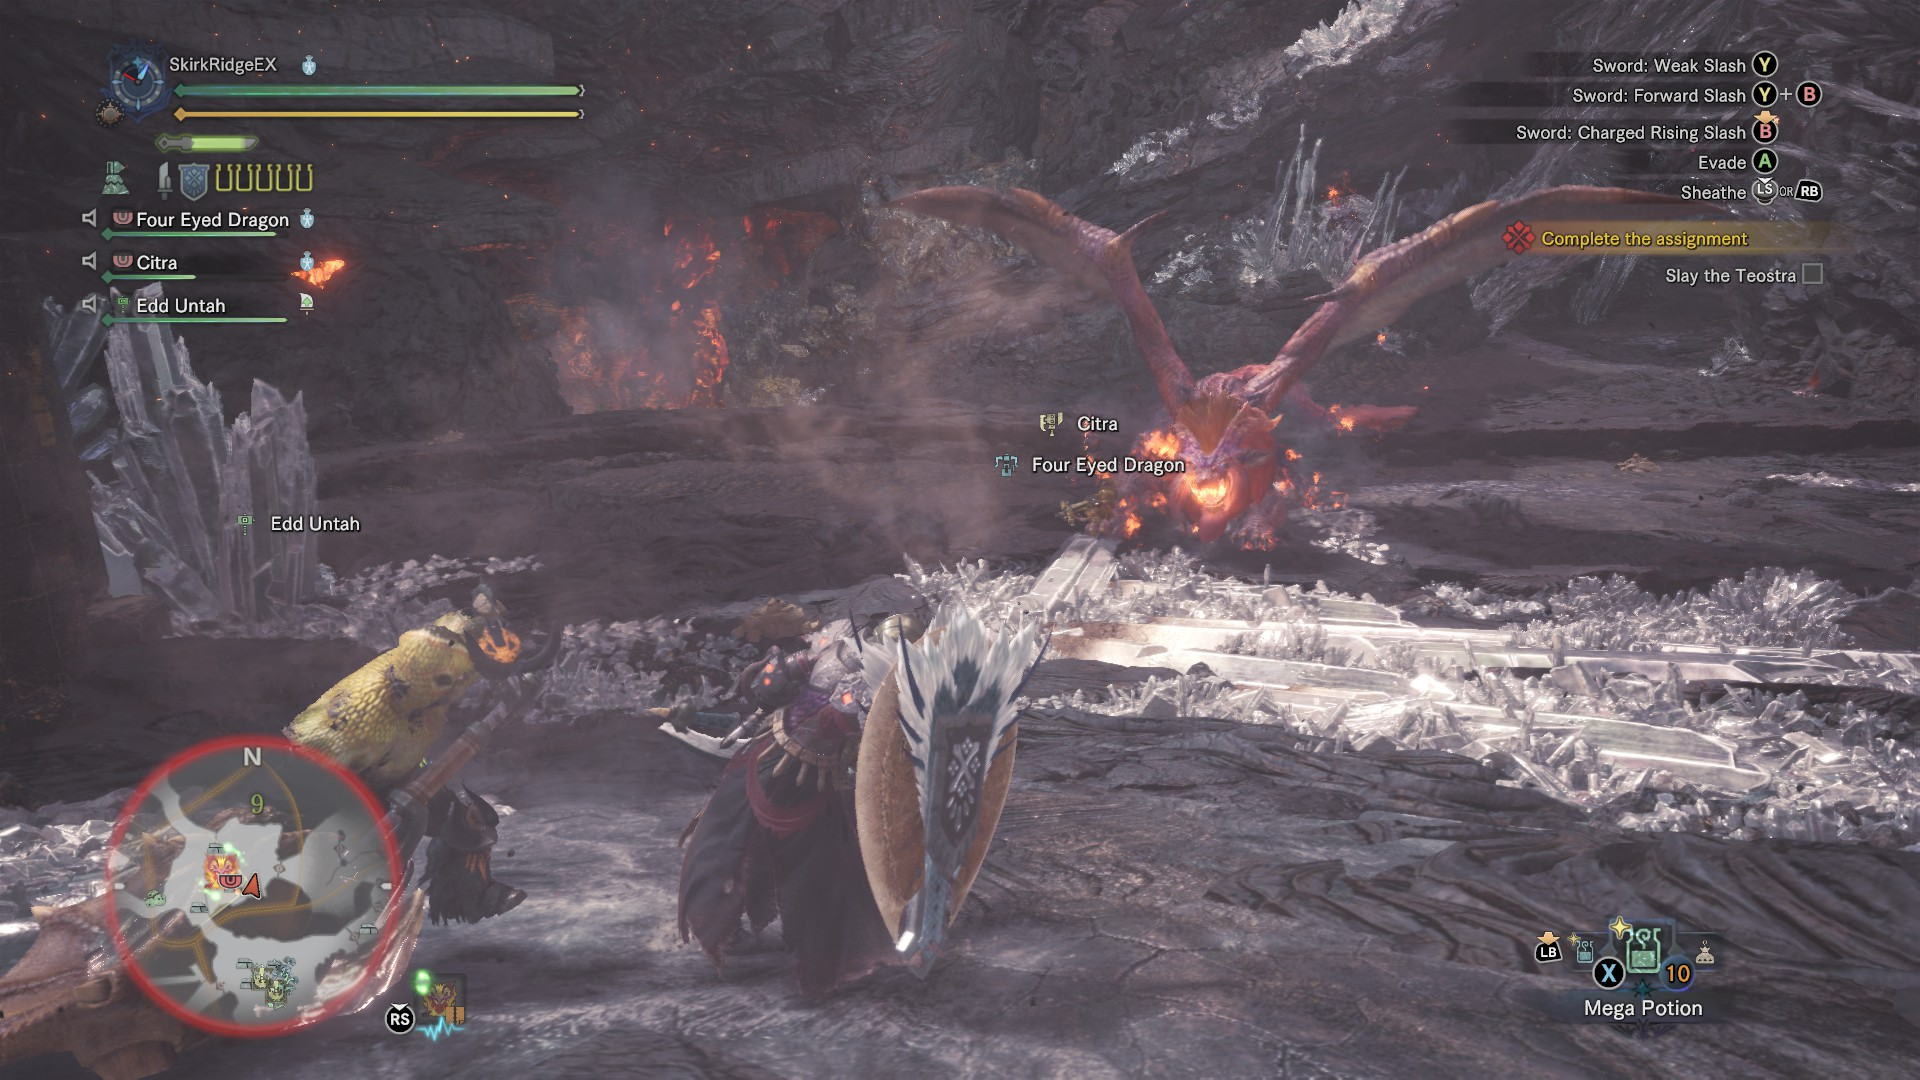 Hunters fighting Teostra.